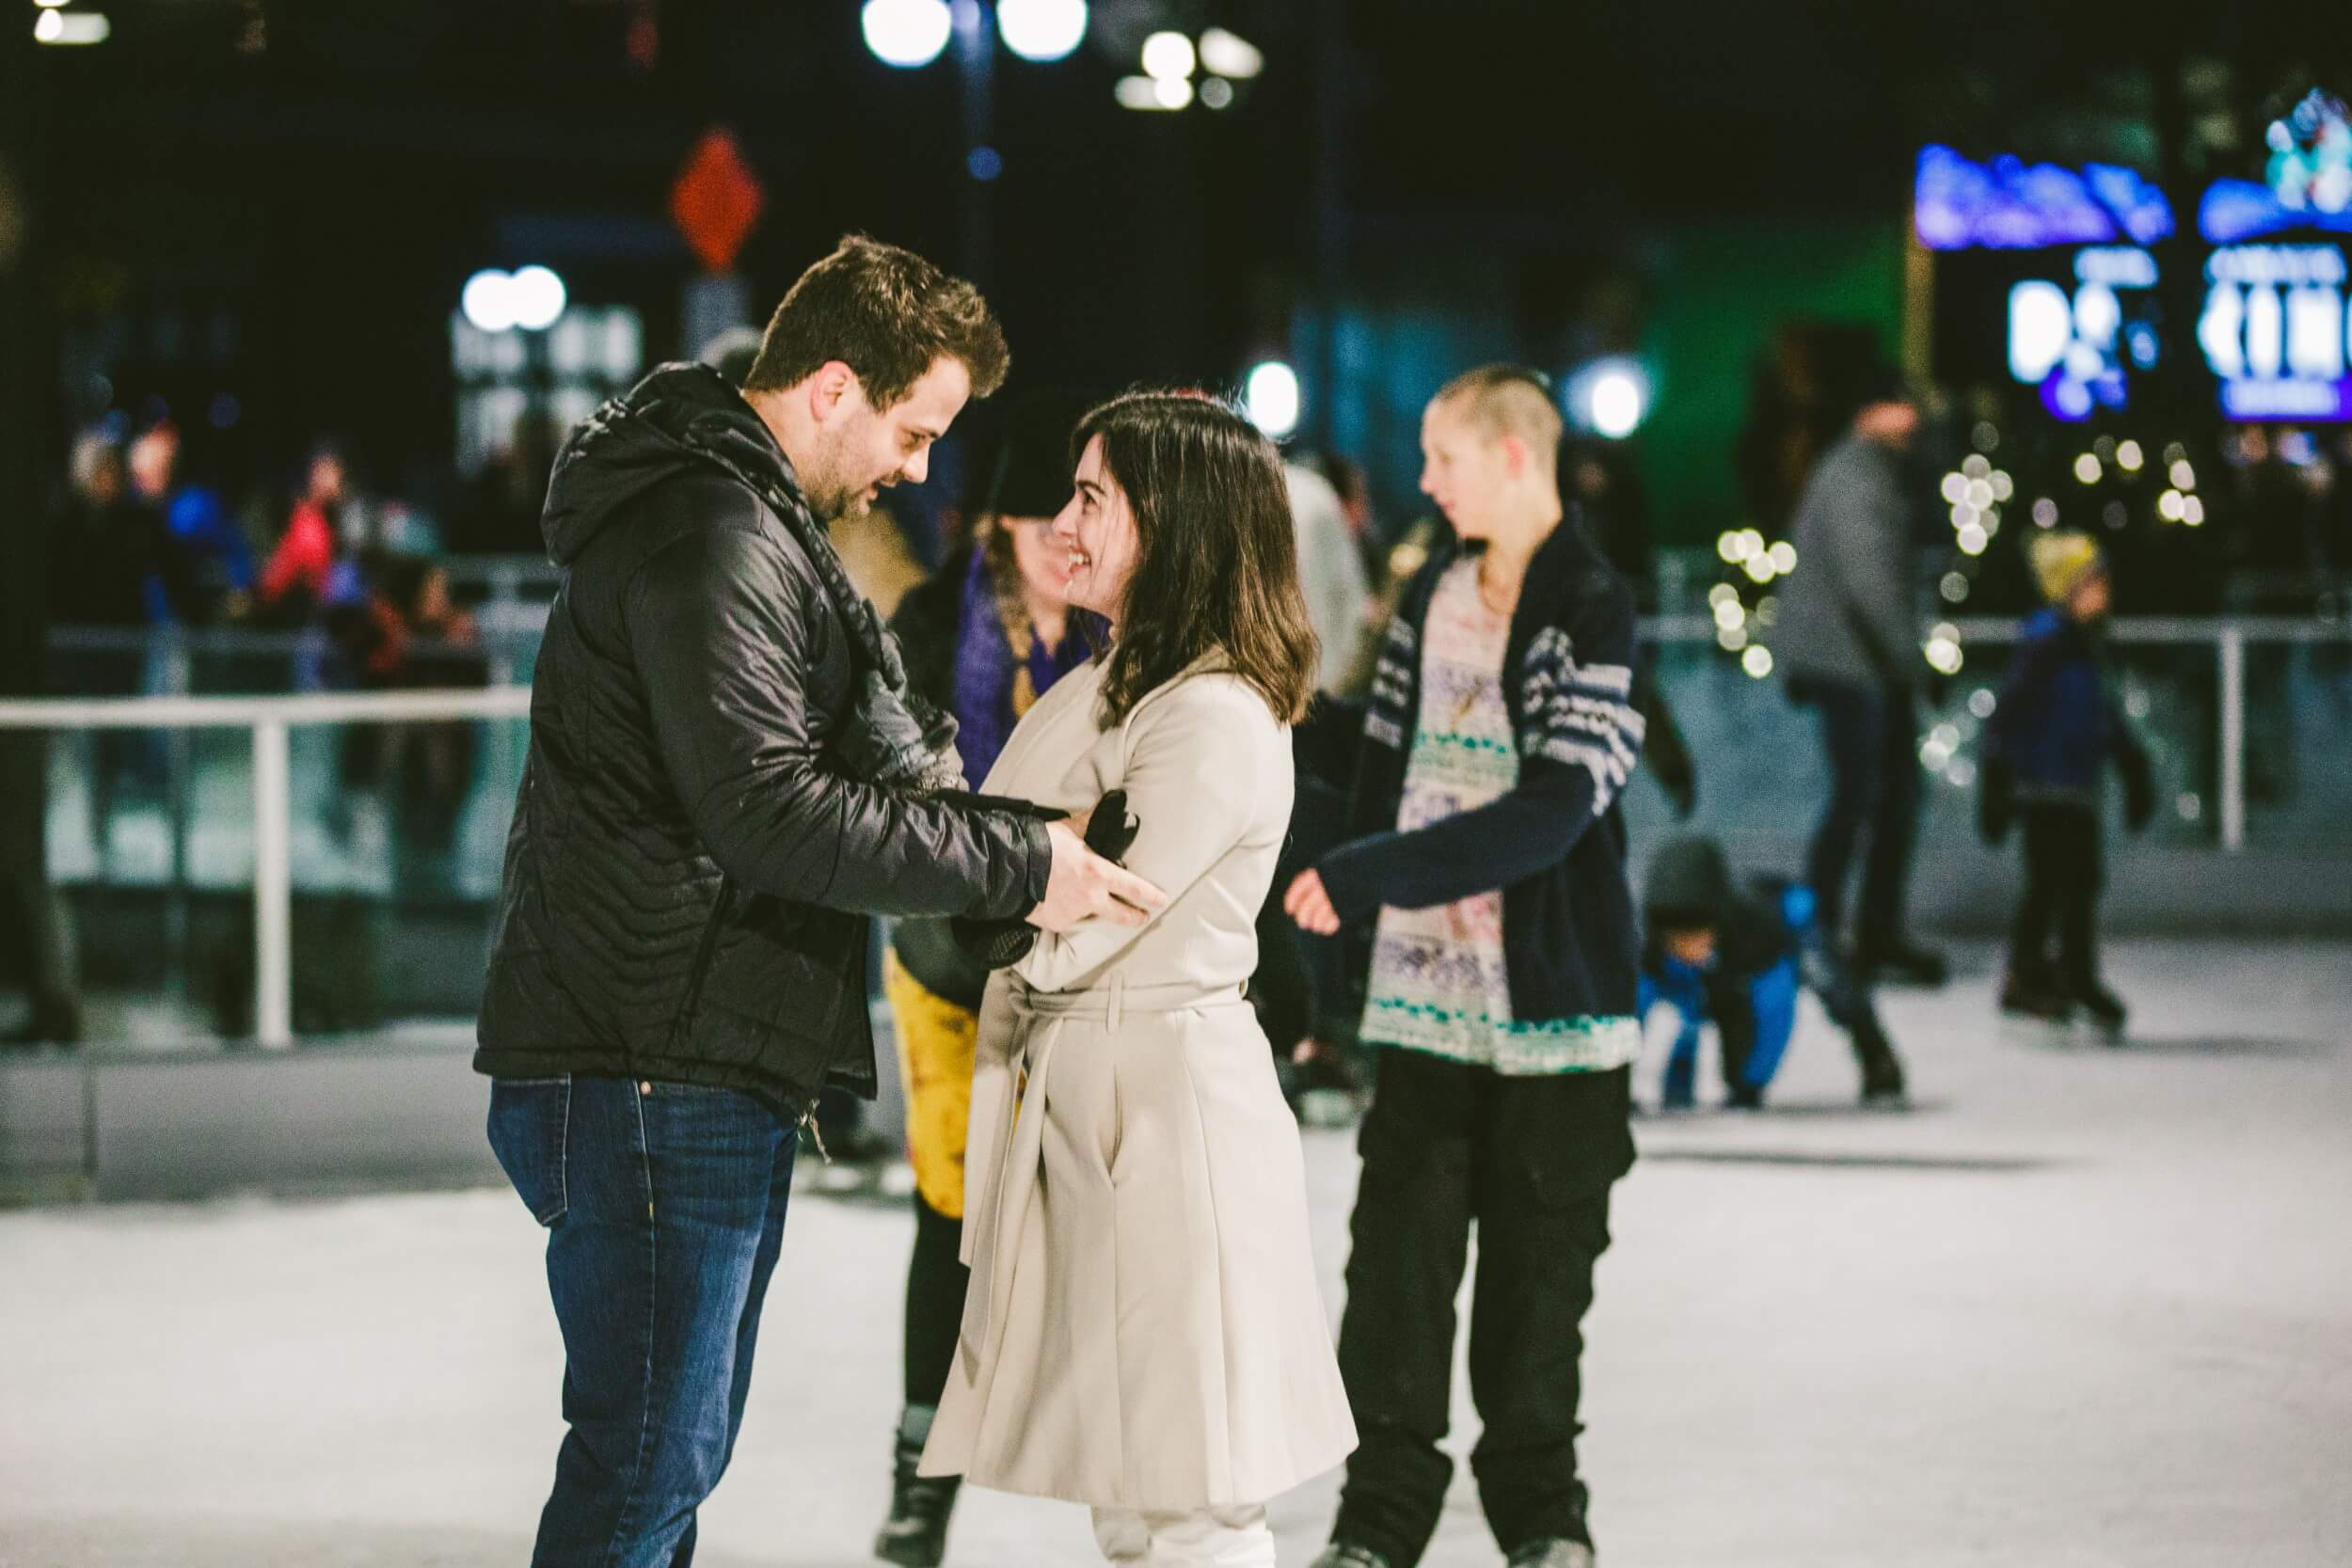 Ice Ribbon suprise proposal spokane (9).jpg